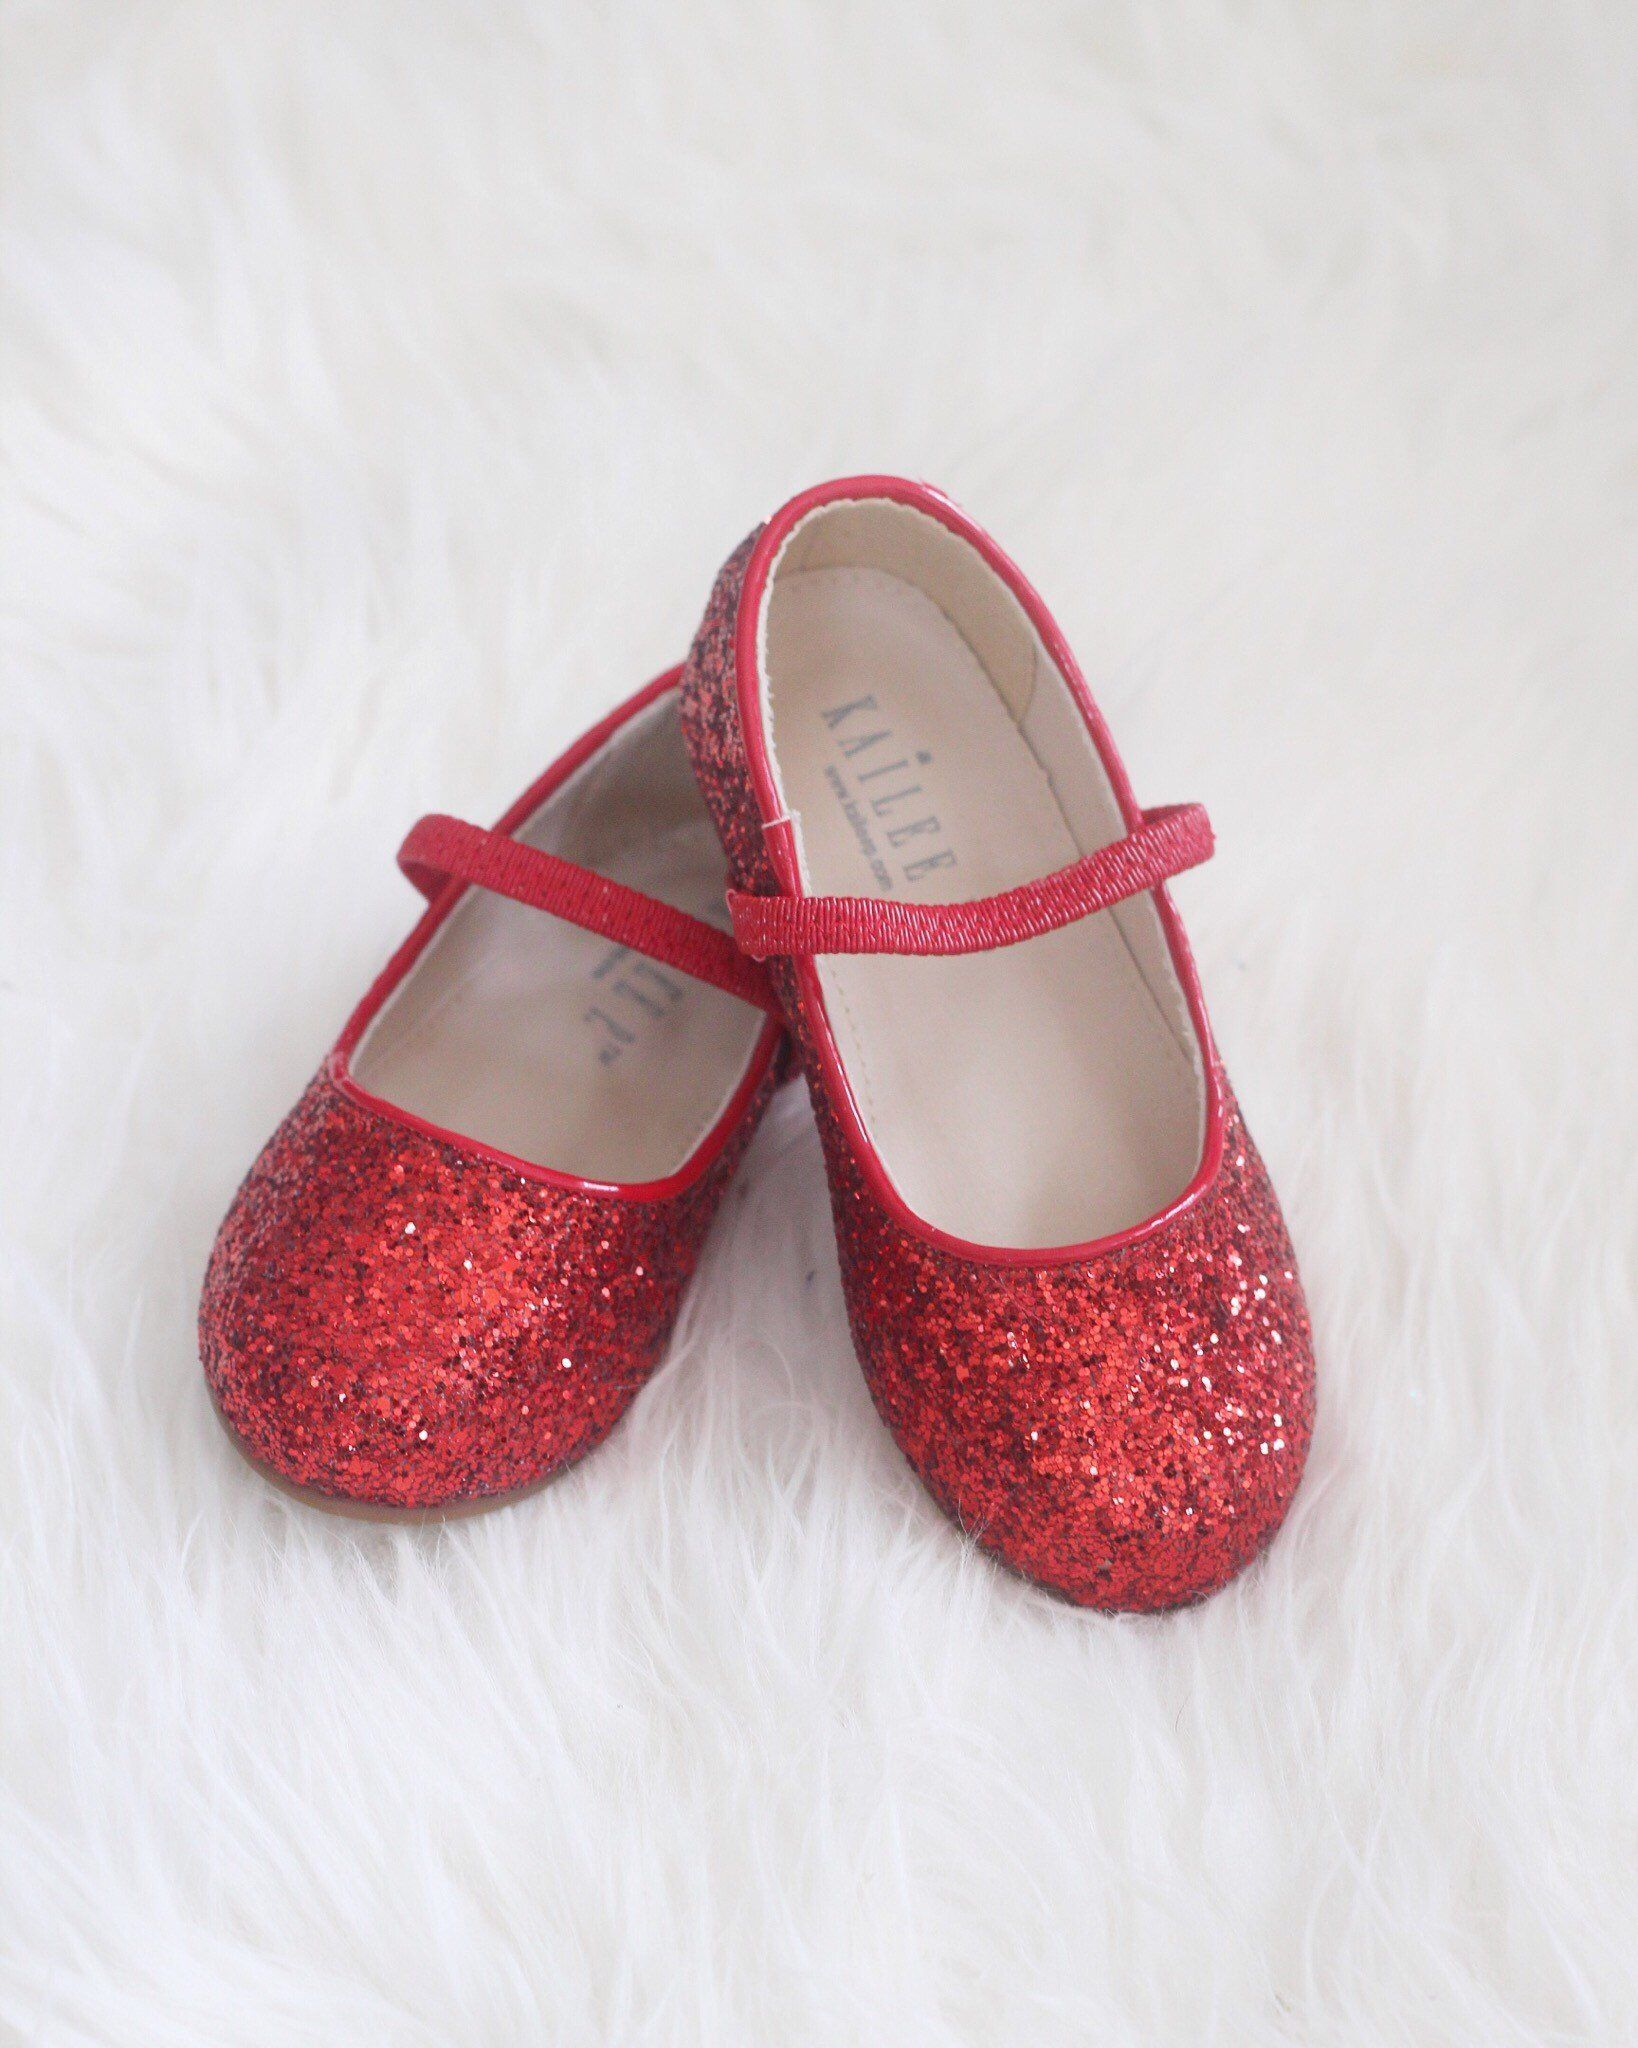 2 Color Cute Dress Buckle Strap Formal Kids Youth Casual Girls Flats Shoes